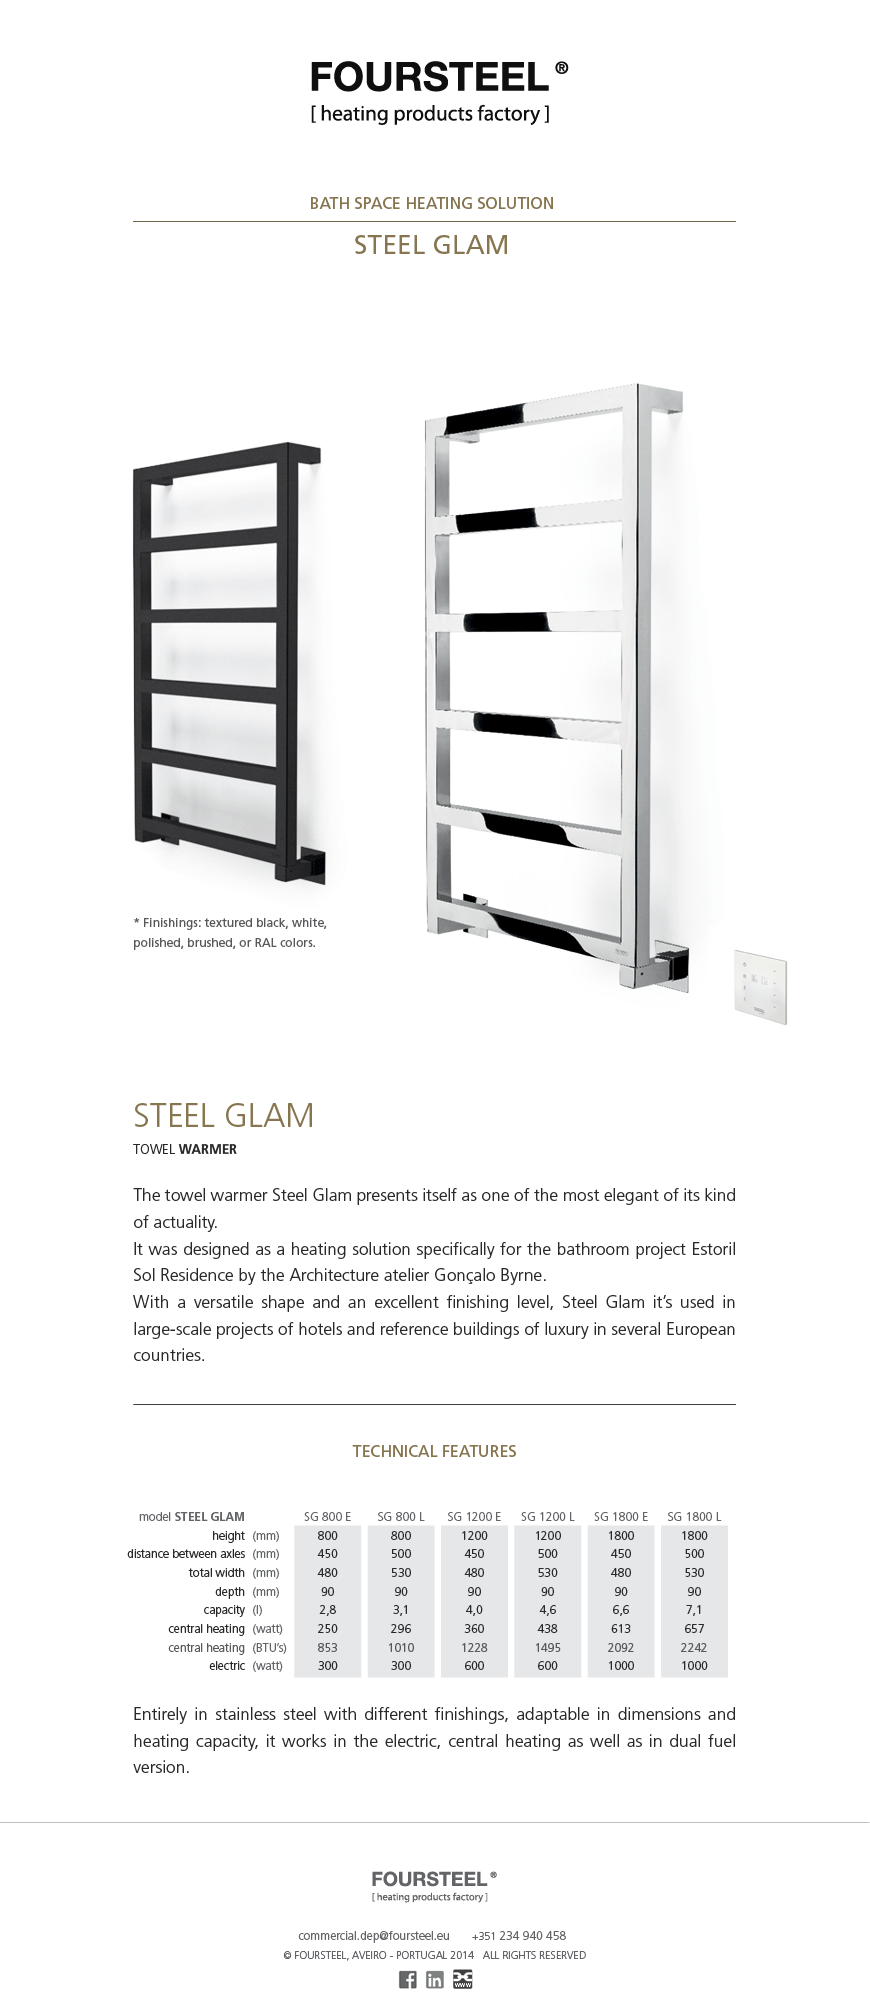 steel glam - oct 2014